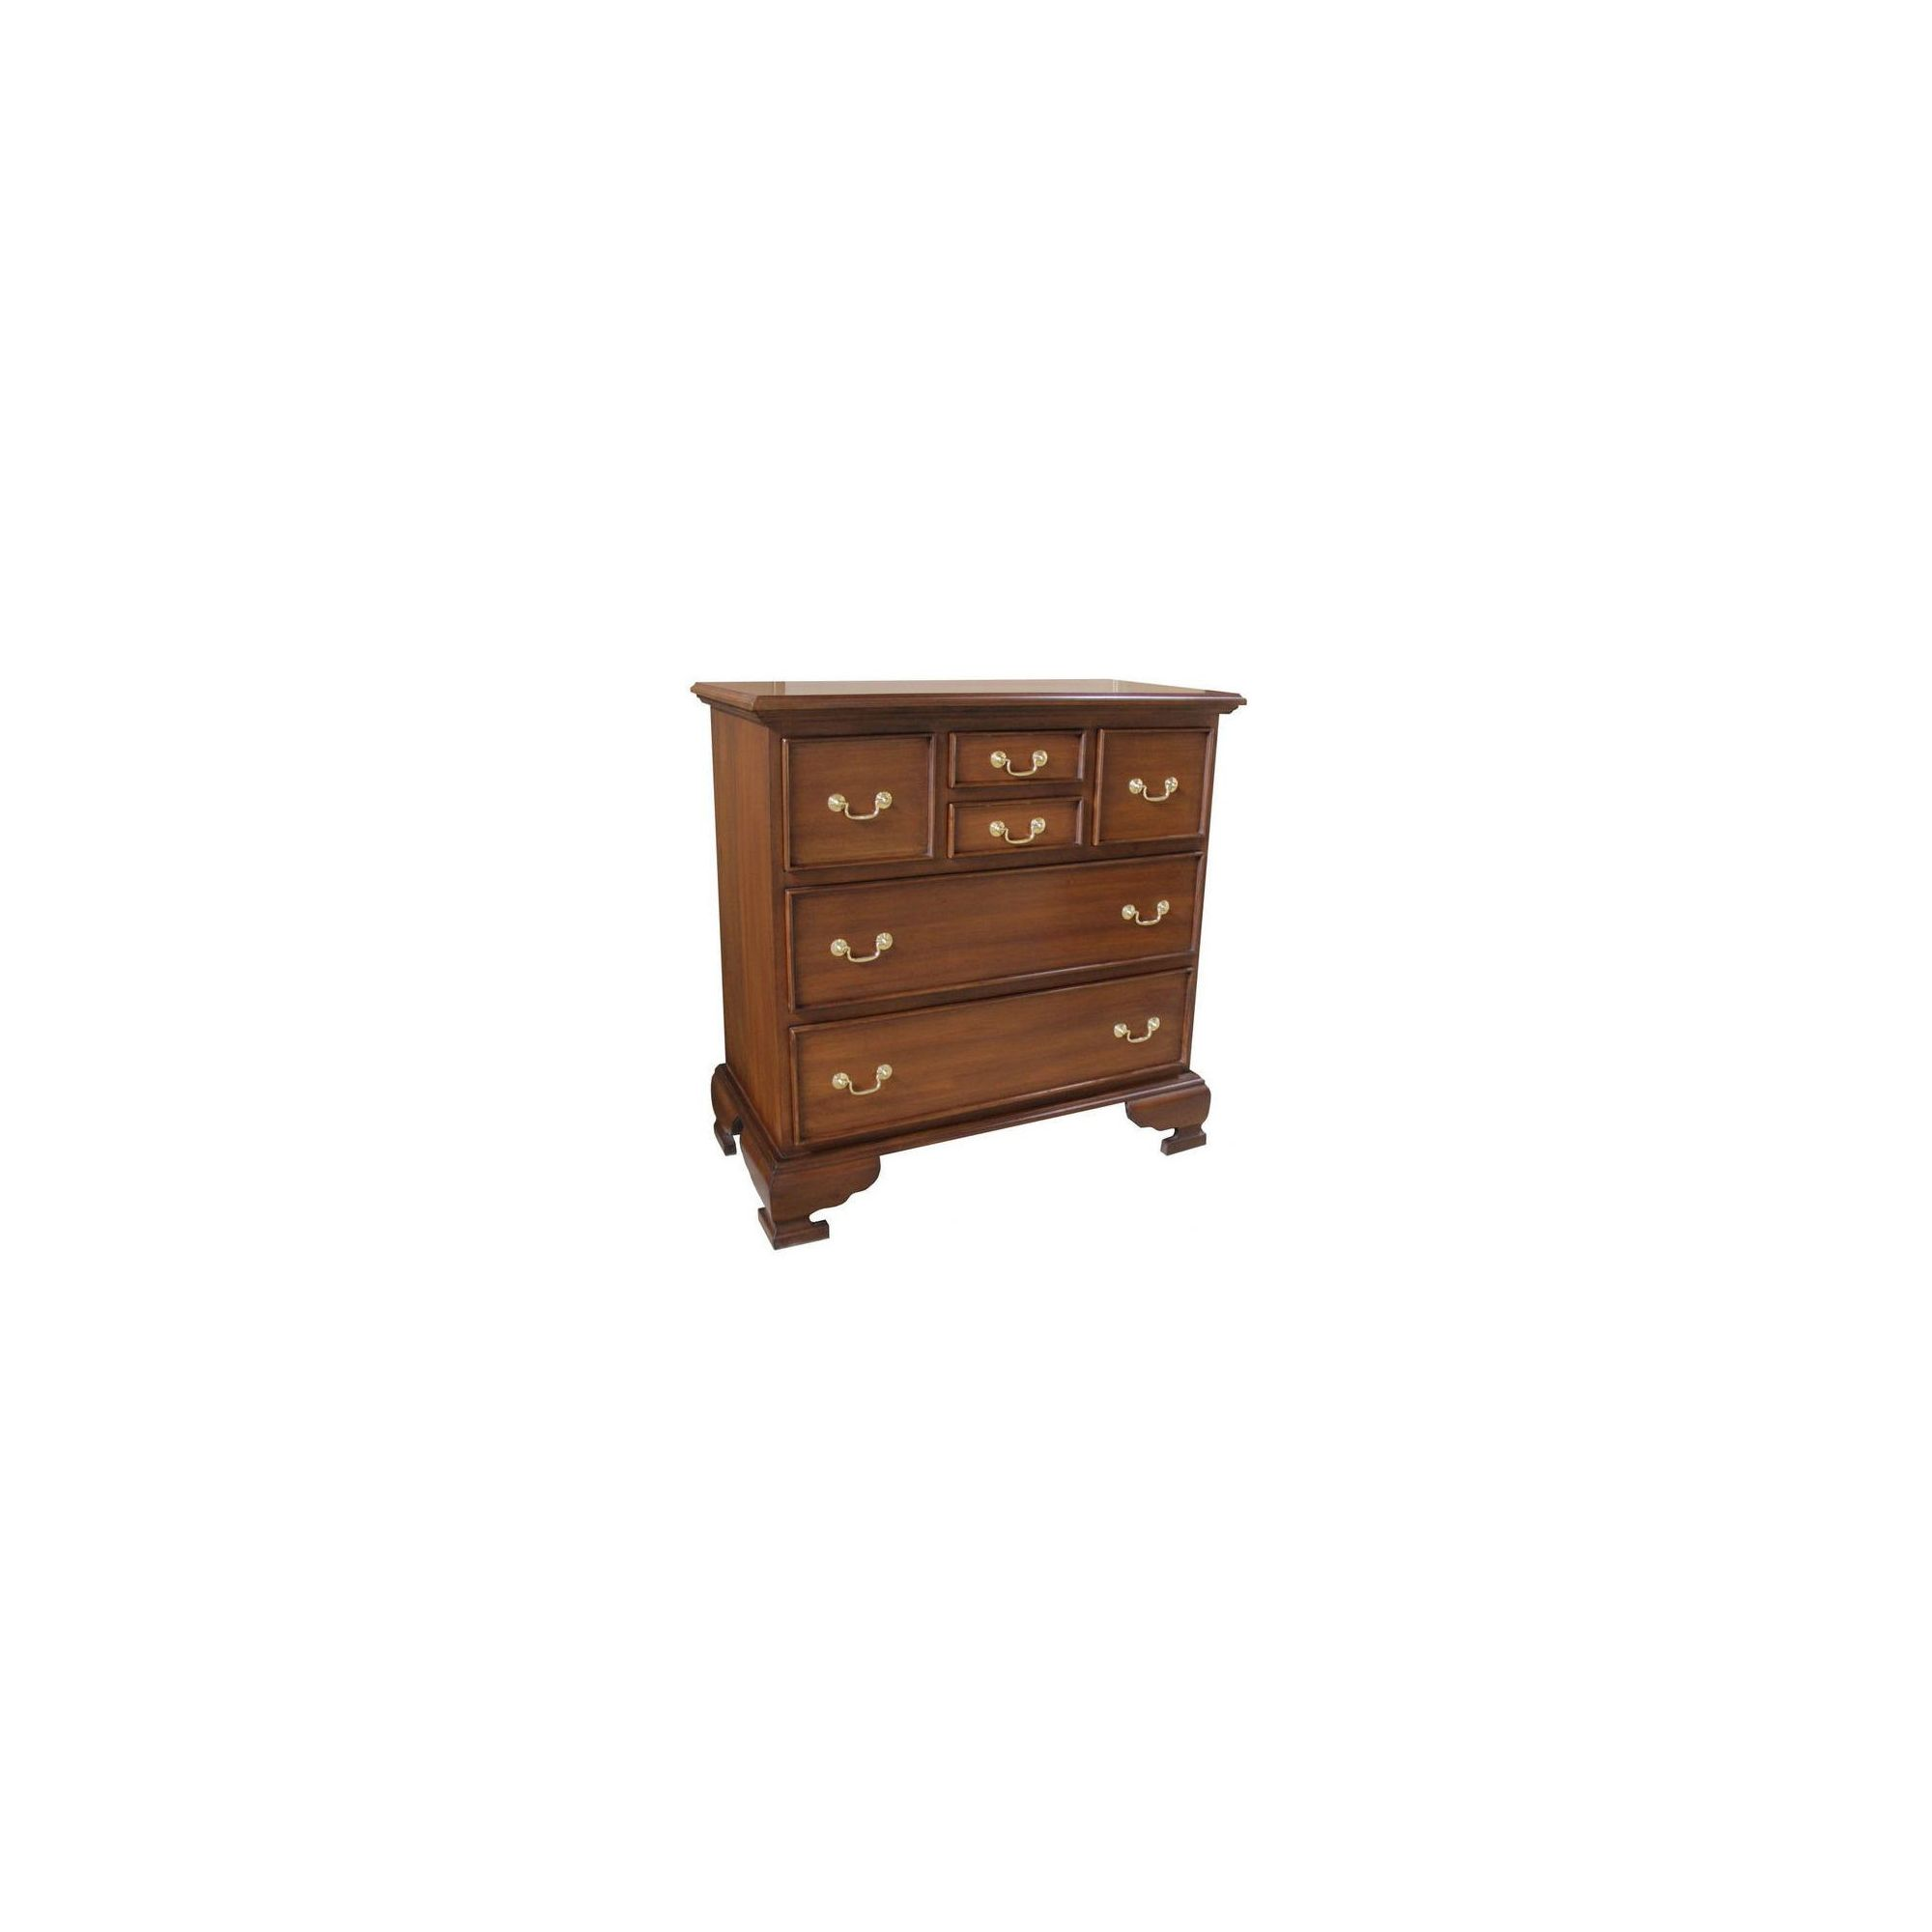 Lock stock and barrel Mahogany 4 Over 2 Drawer Chest - Wax at Tesco Direct